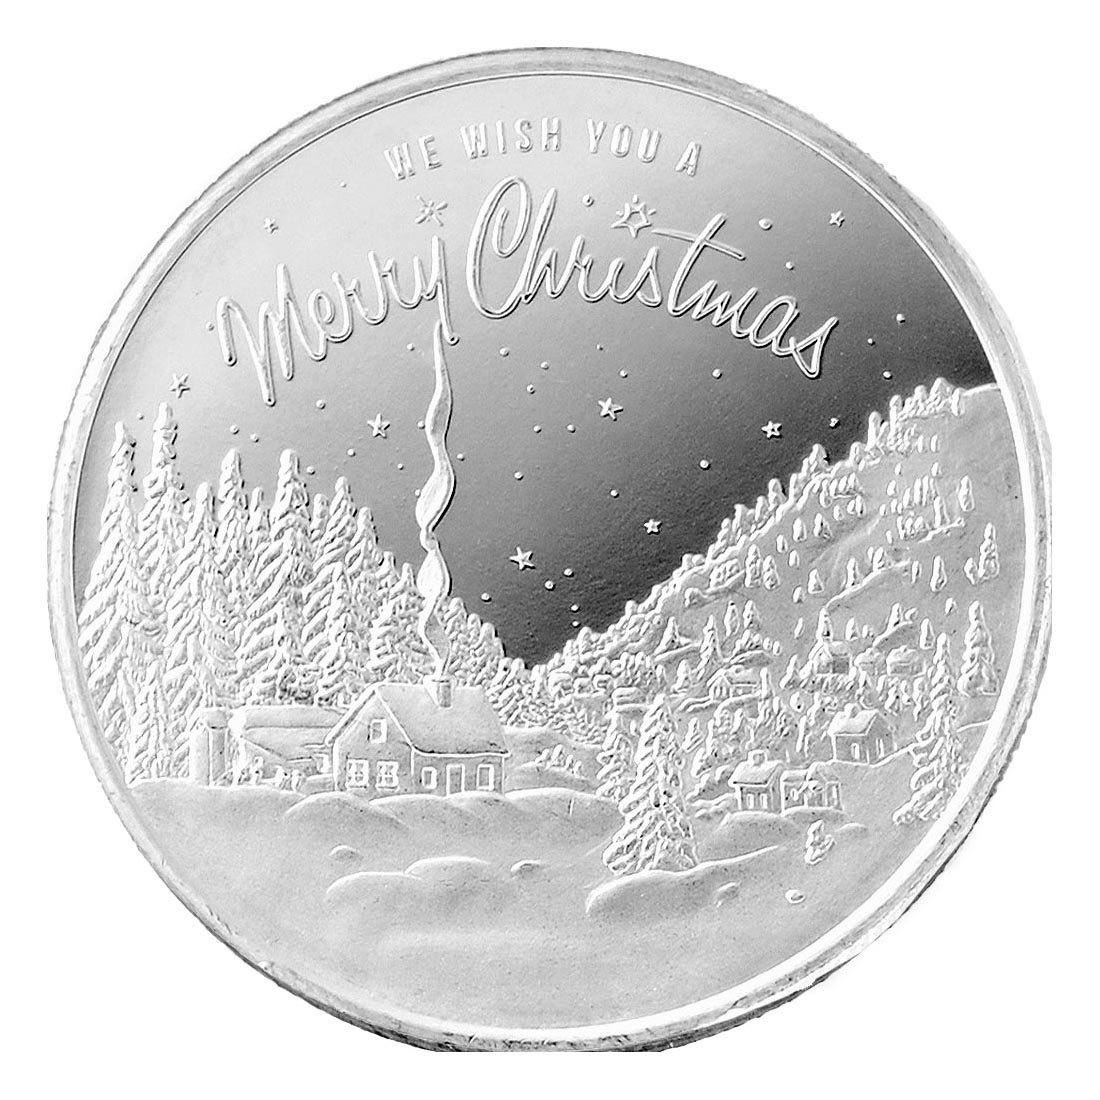 2021 Christmas in the Mountains 1oz Silver Round (D-16)